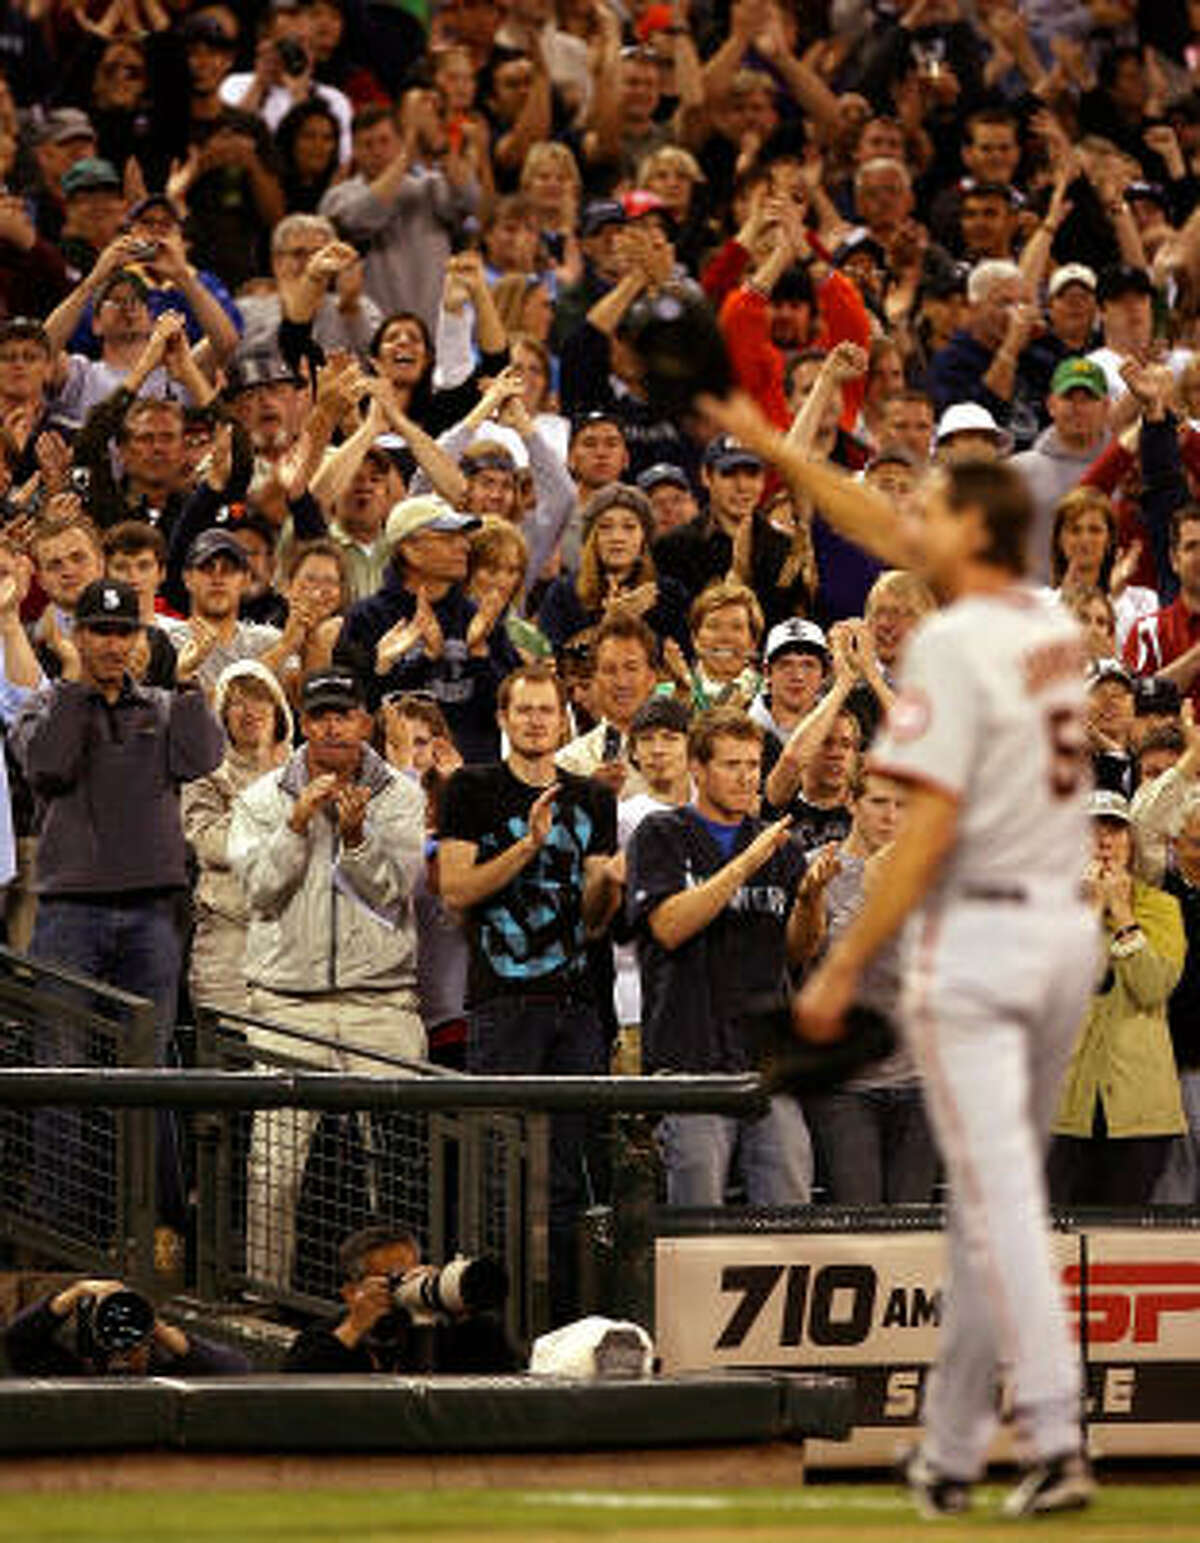 Randy Johnson acknowledges the crowd after coming out of the game in the sixth inning against the Mariners on May 22, 2009 in Seattle.